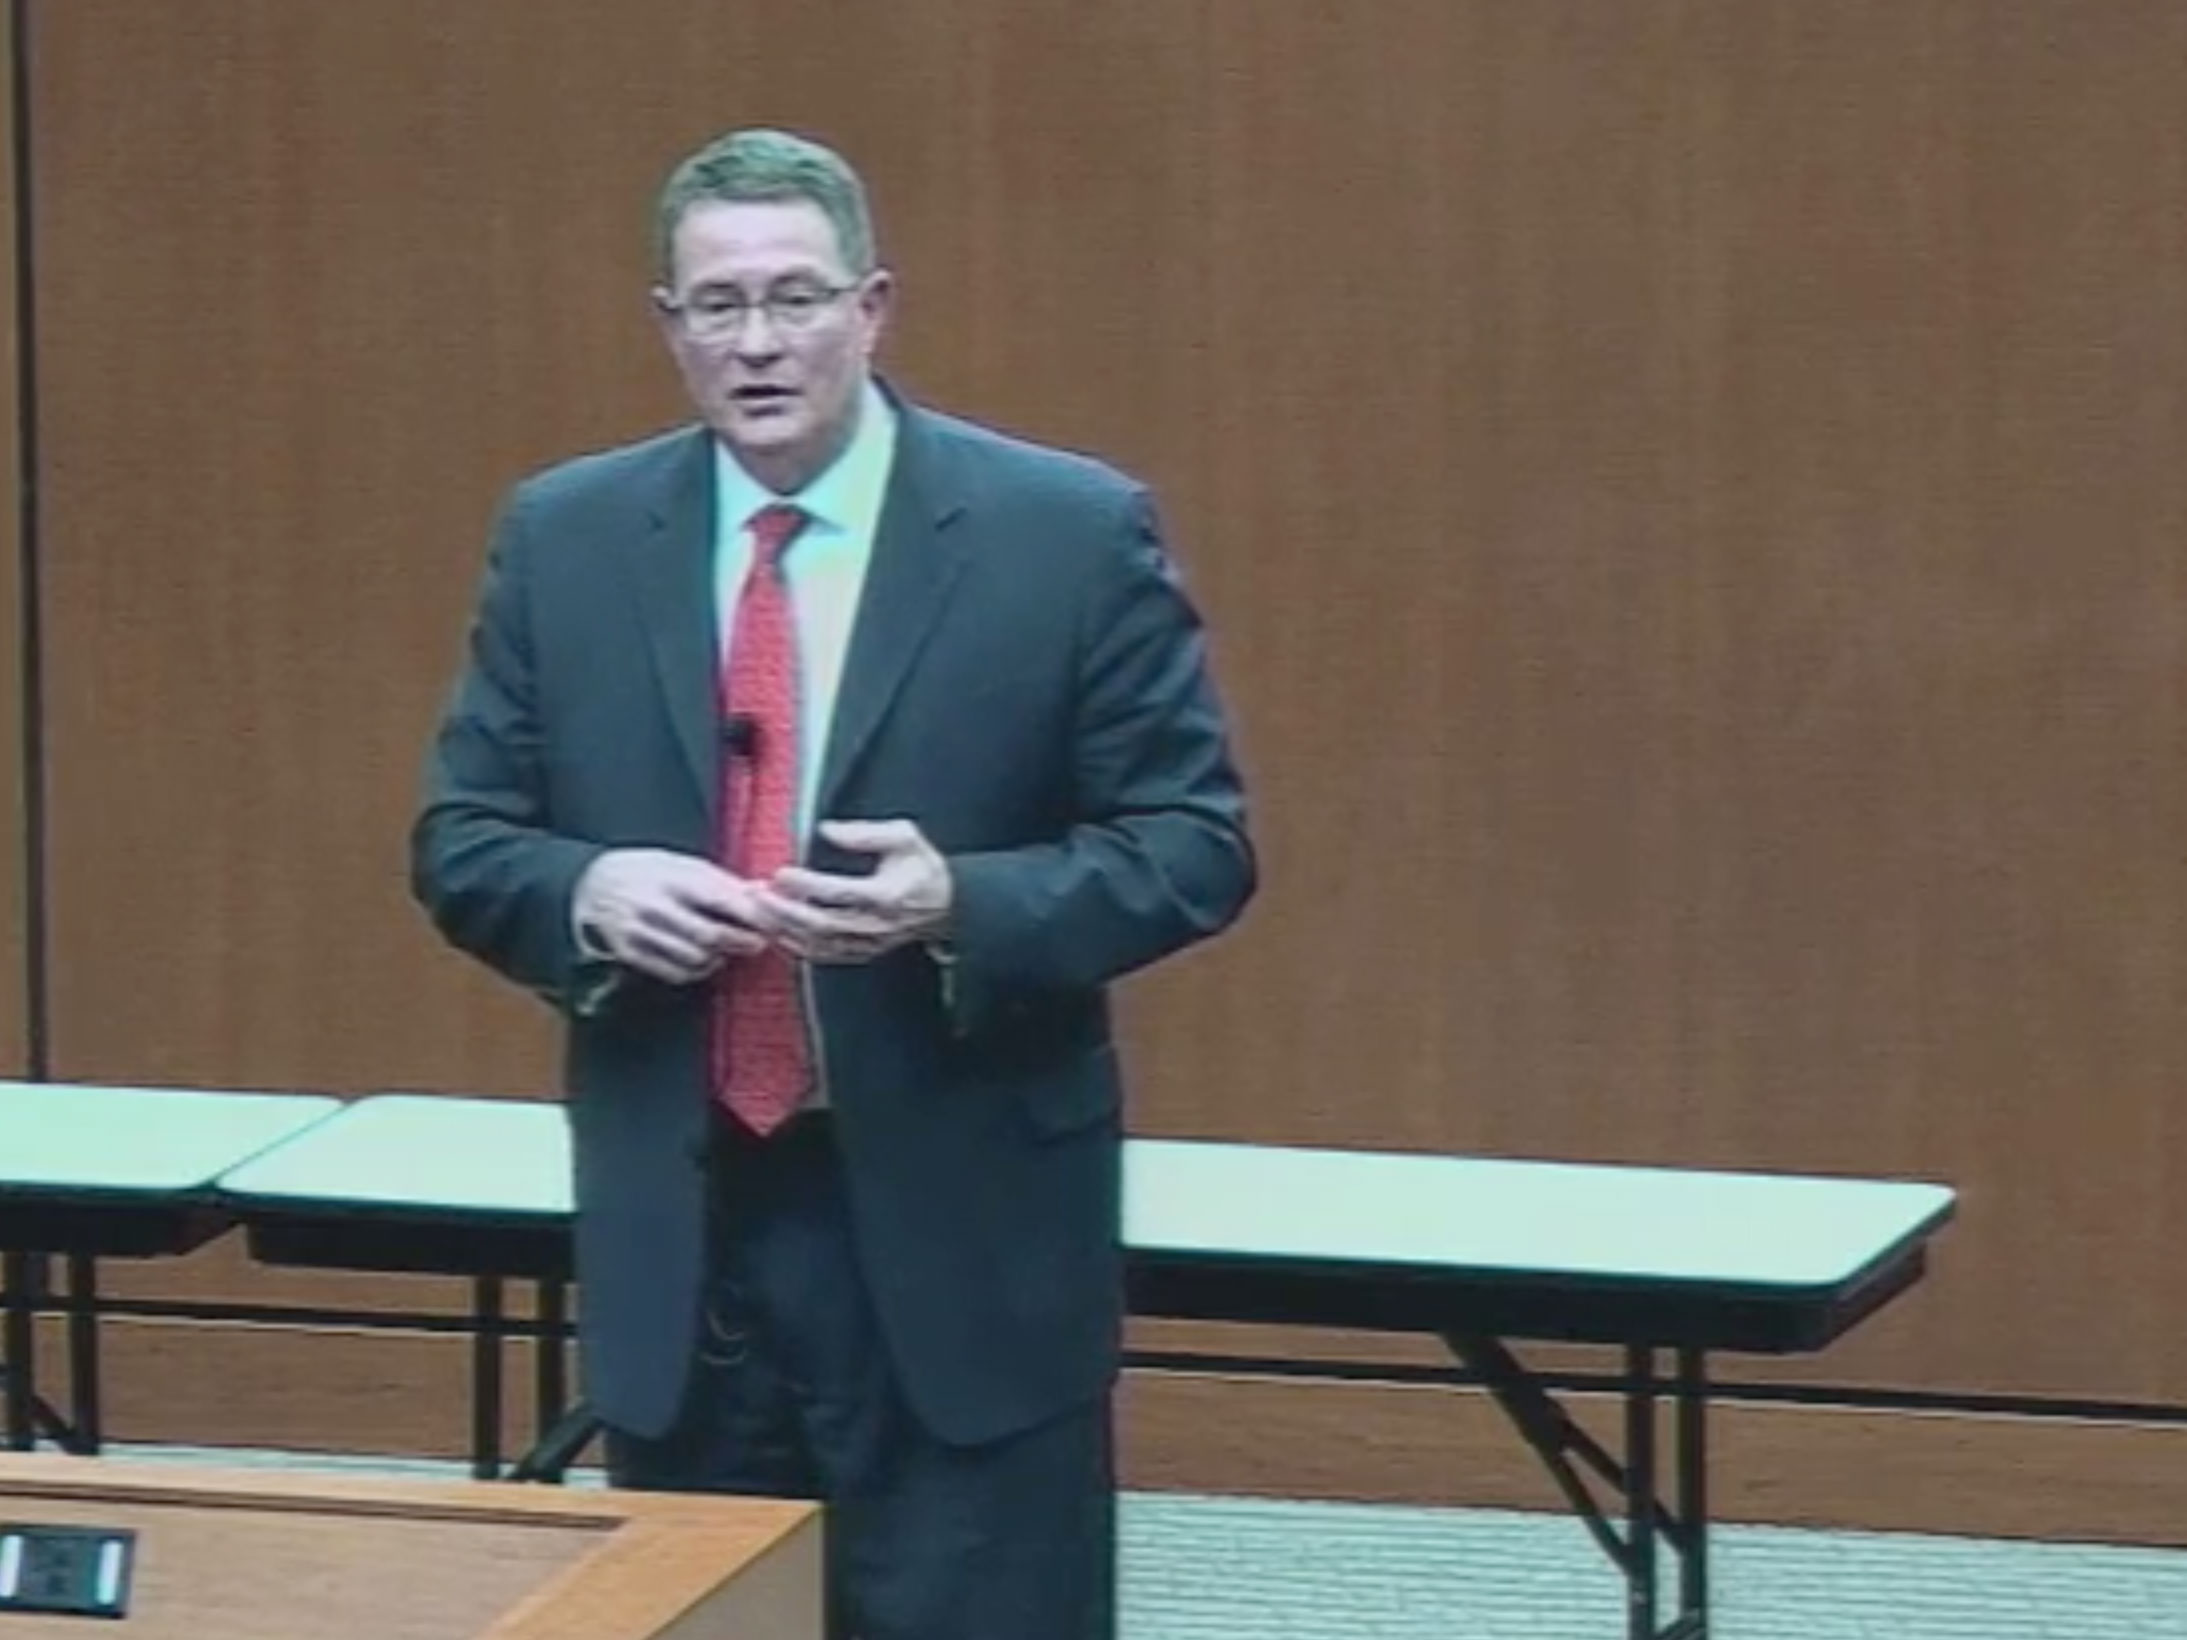 Picture from Dr. Fraker Town Hall video